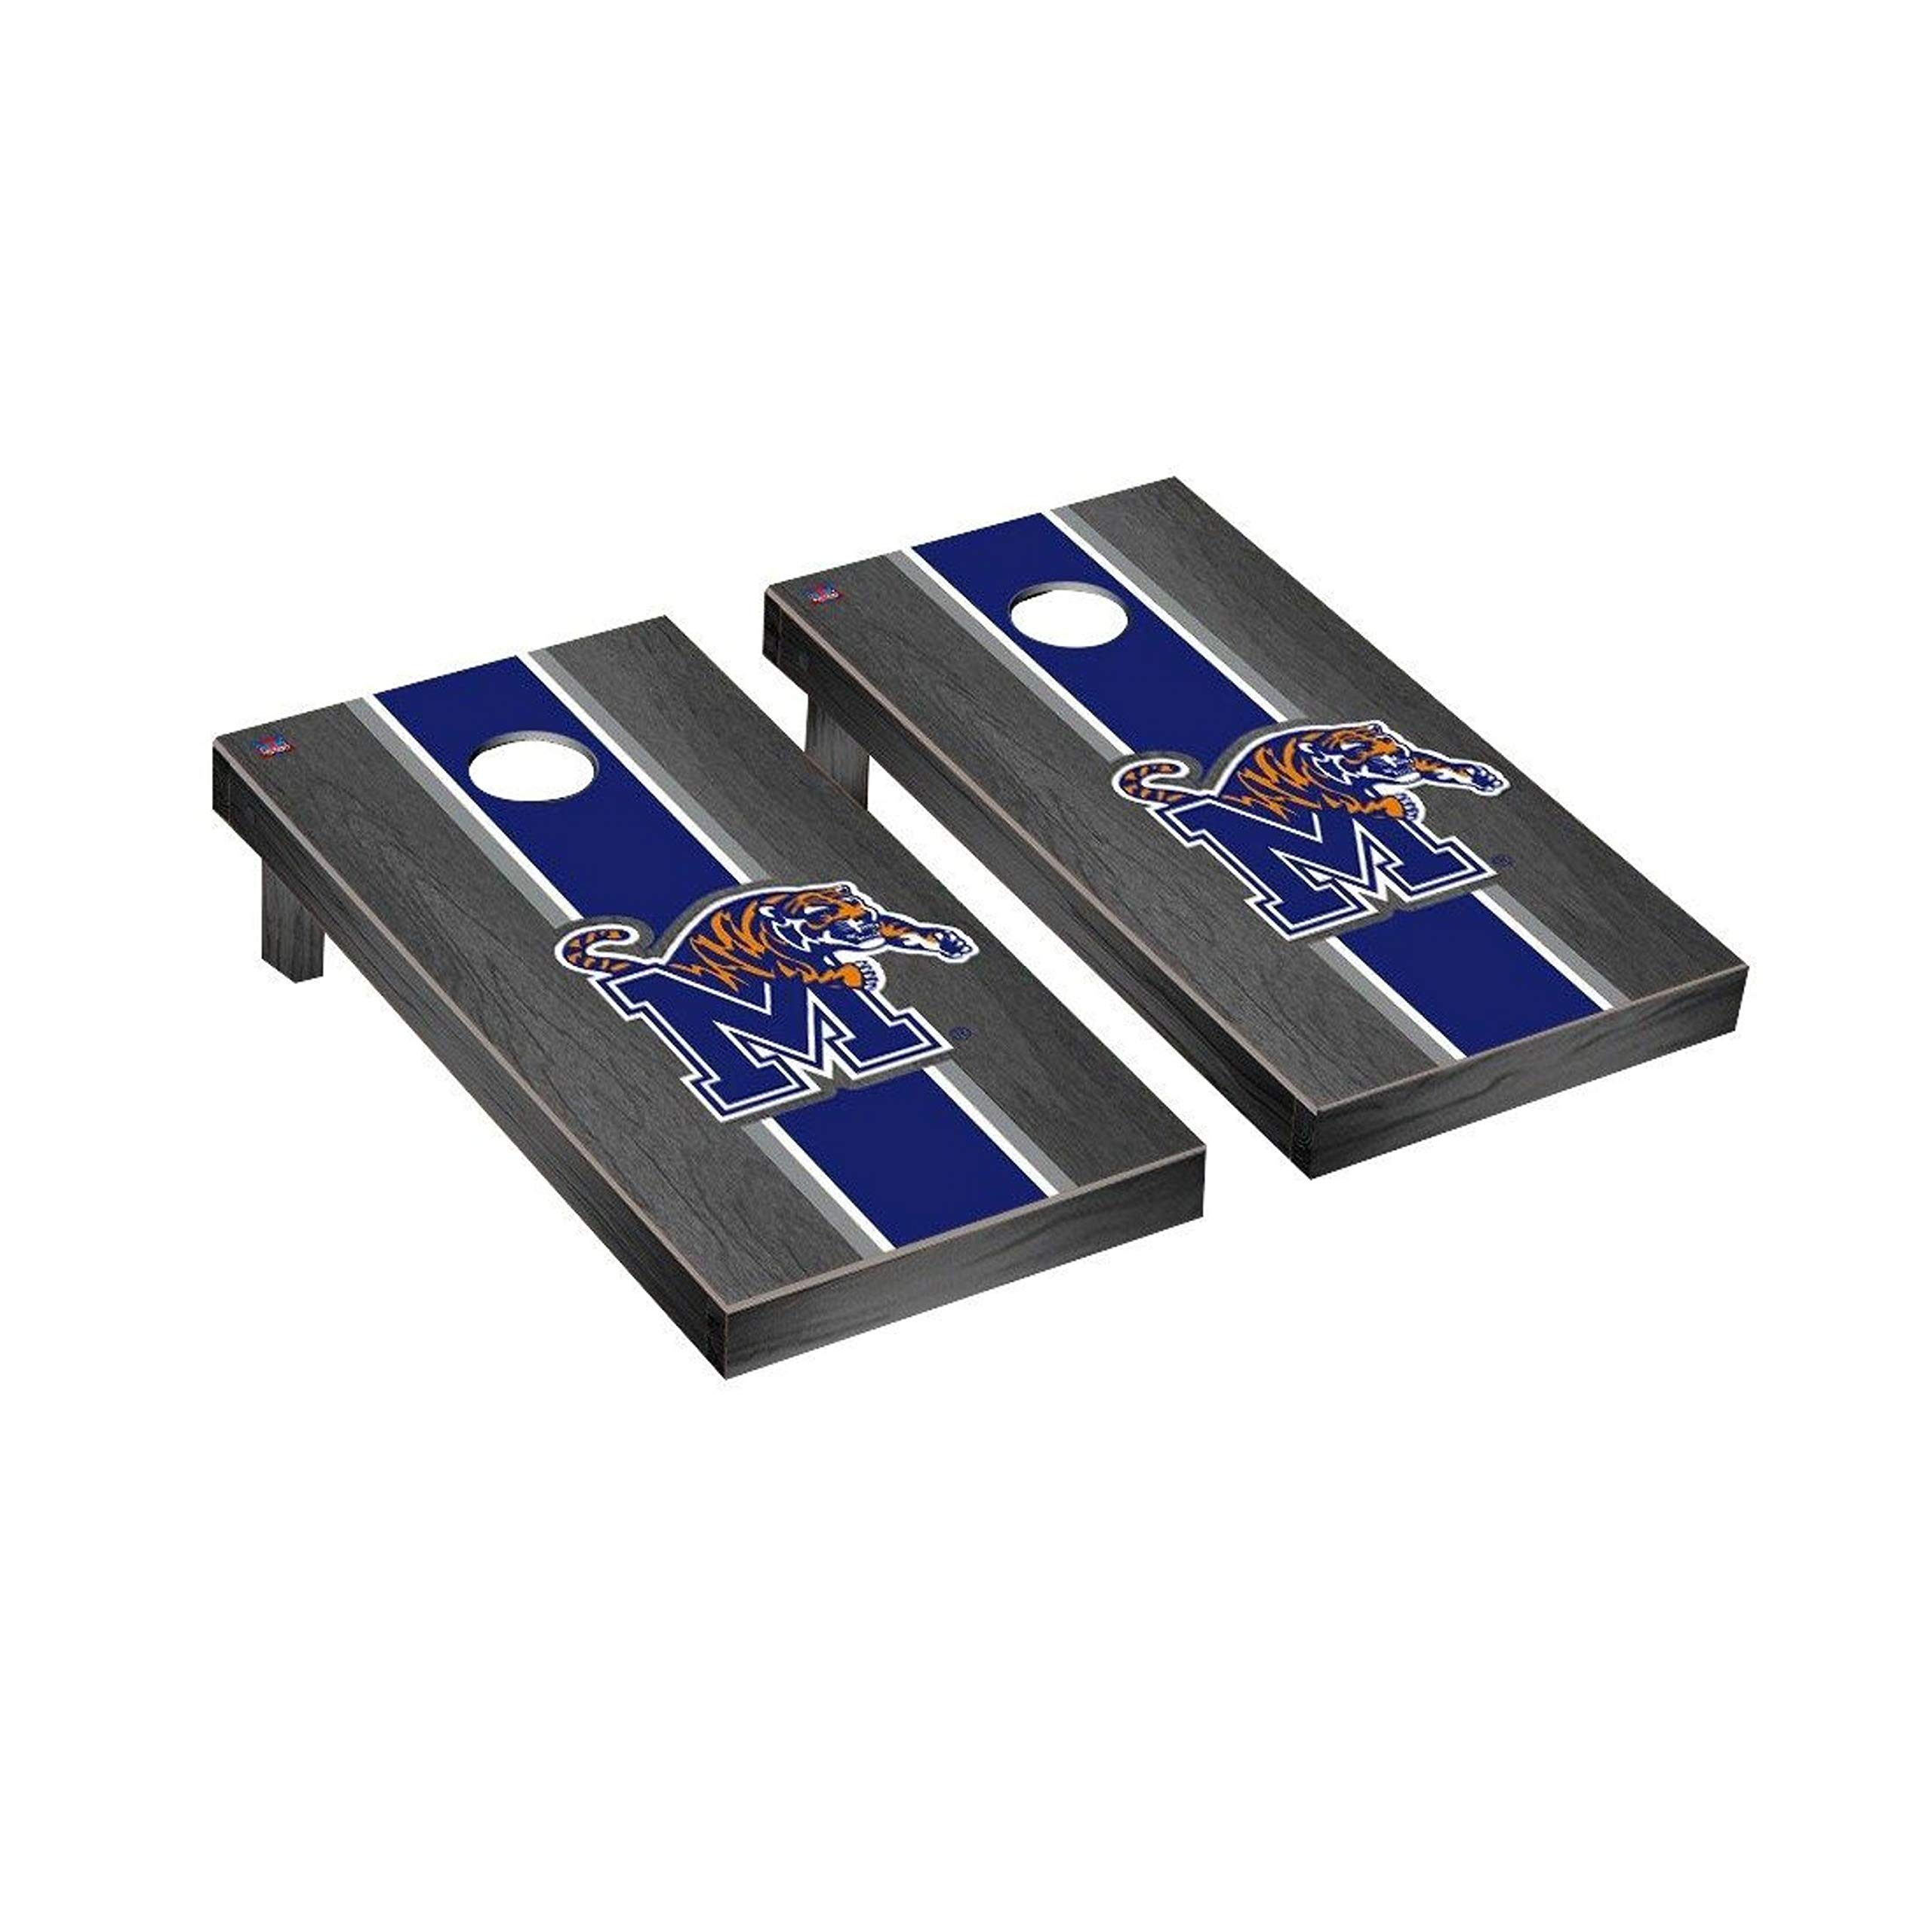 Victory Tailgate Regulation Collegiate NCAA Onyx Stained Stripe Series Cornhole Board Set - 2 Boards, 8 Bags - Memphis Tigers by Victory Tailgate